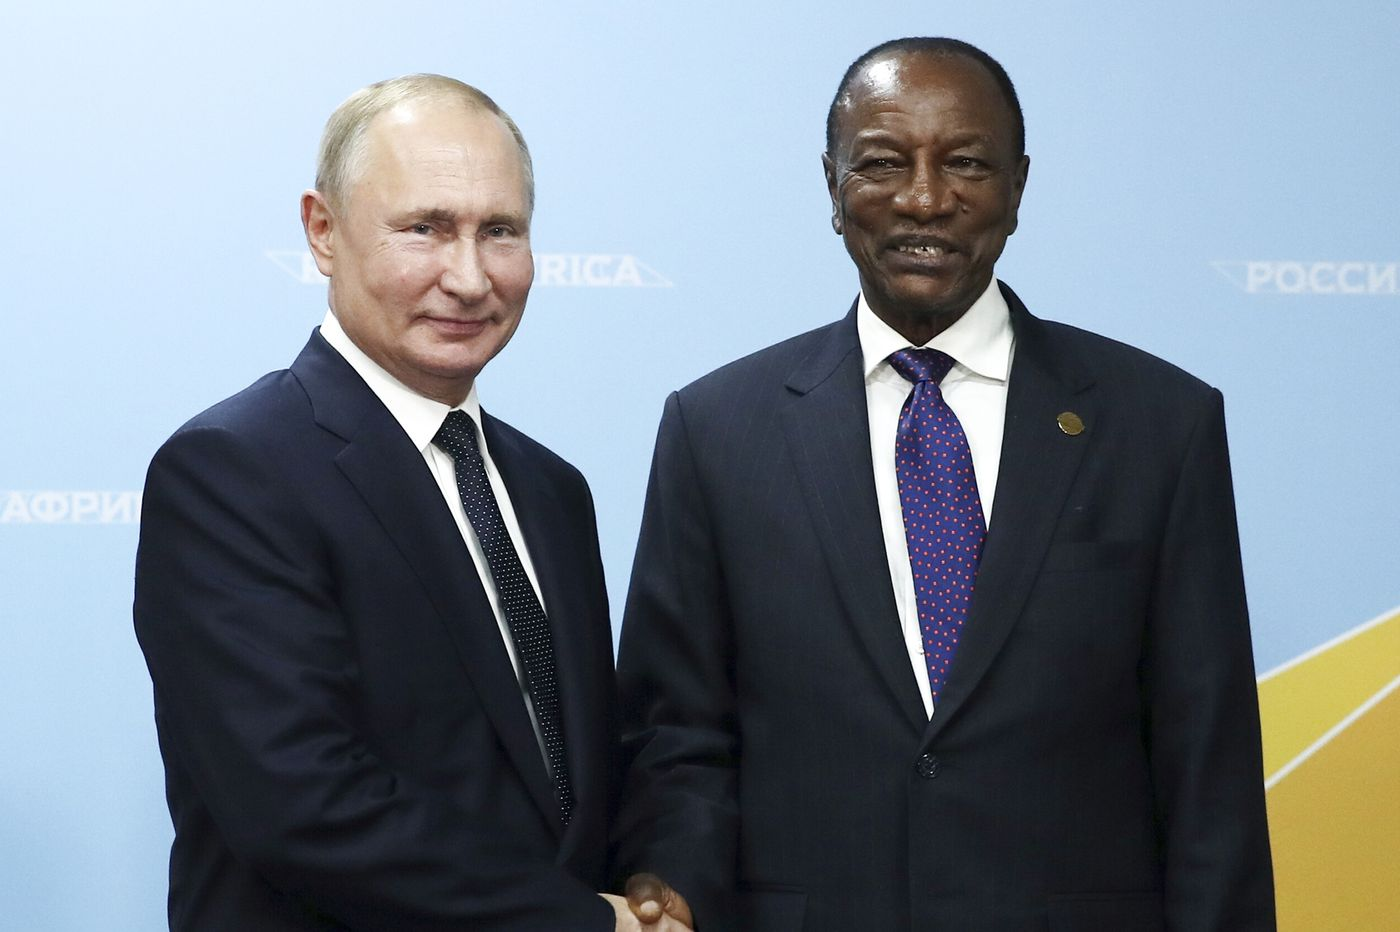 Putin, Guinea president allegedly discussed getting around term limits